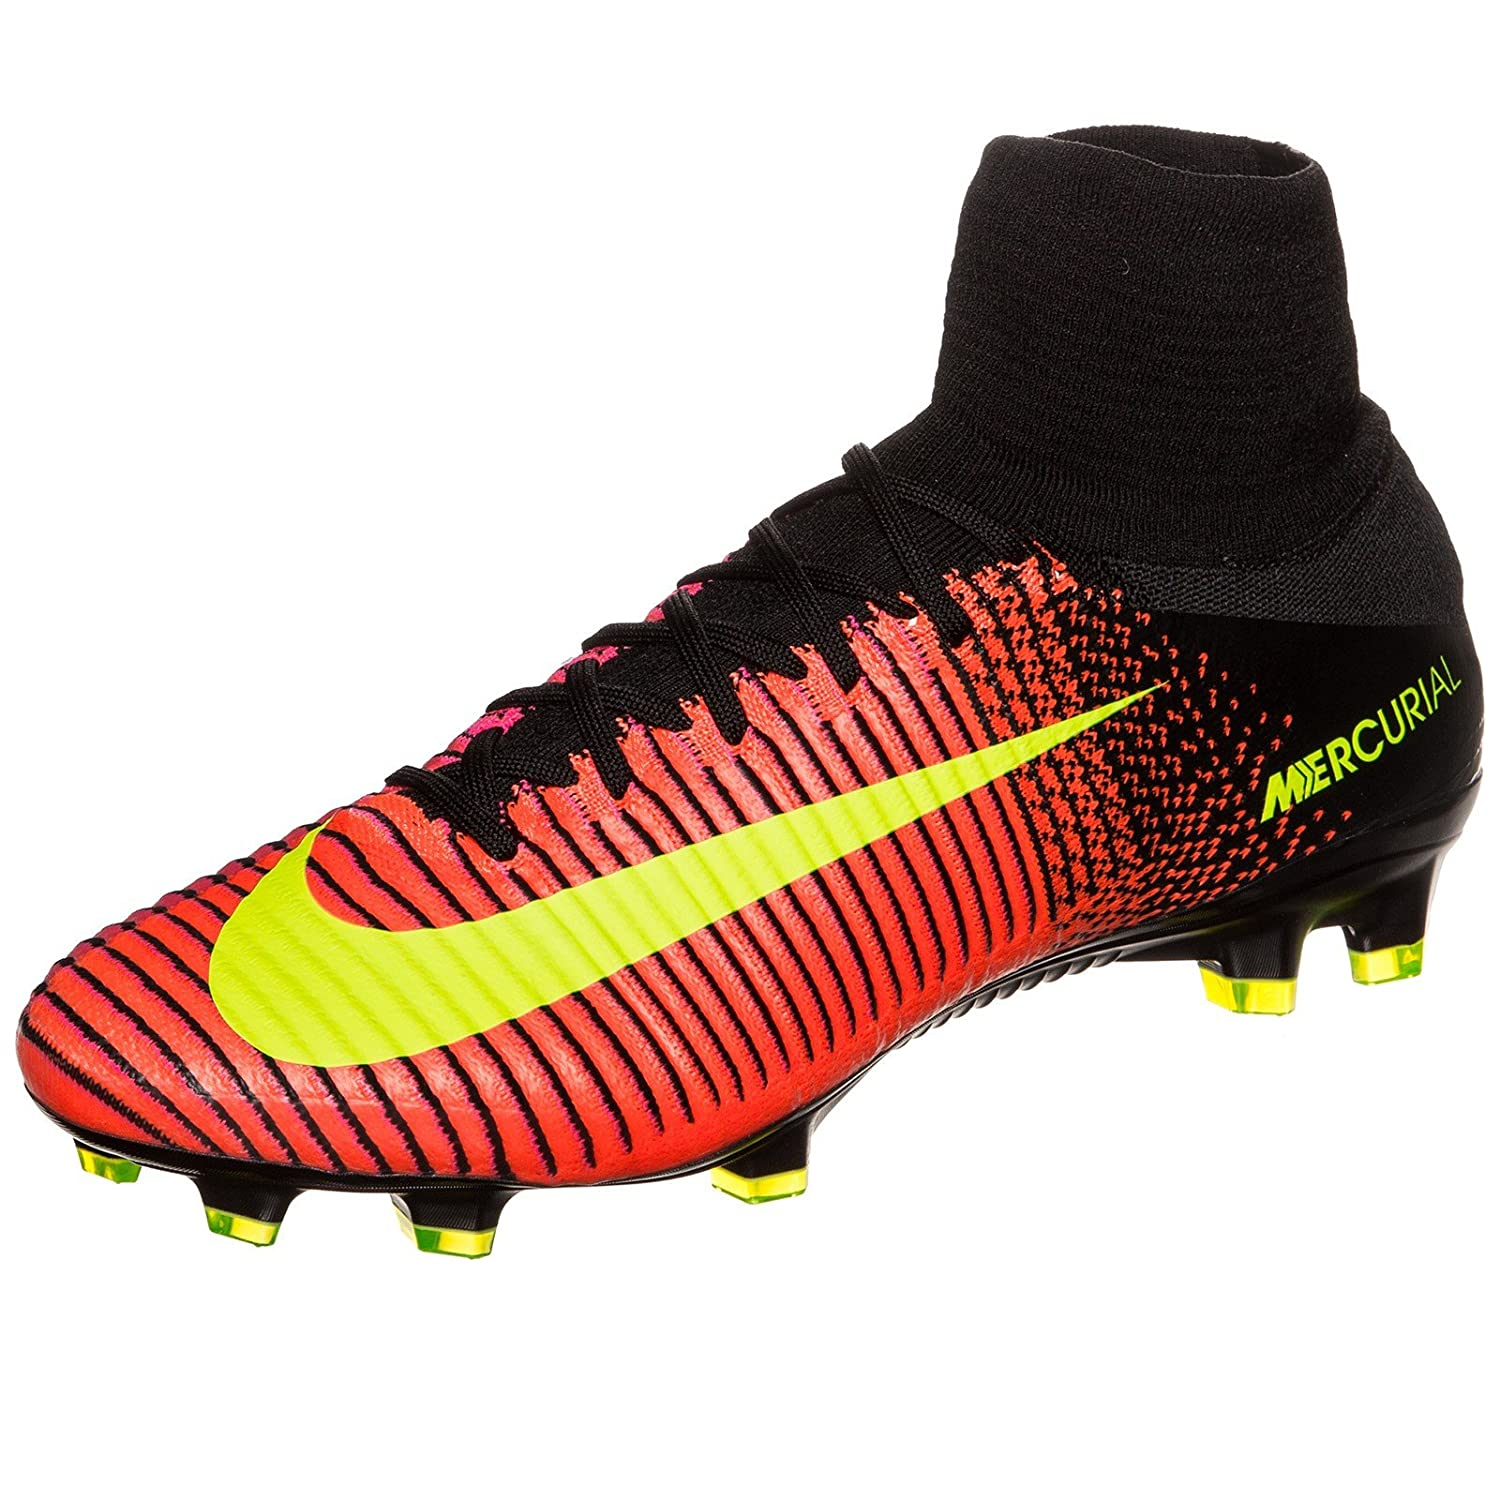 f9508ae0dcef Amazon.com | Nike Men's Mercurial Superfly V Soccer Cleat | Soccer